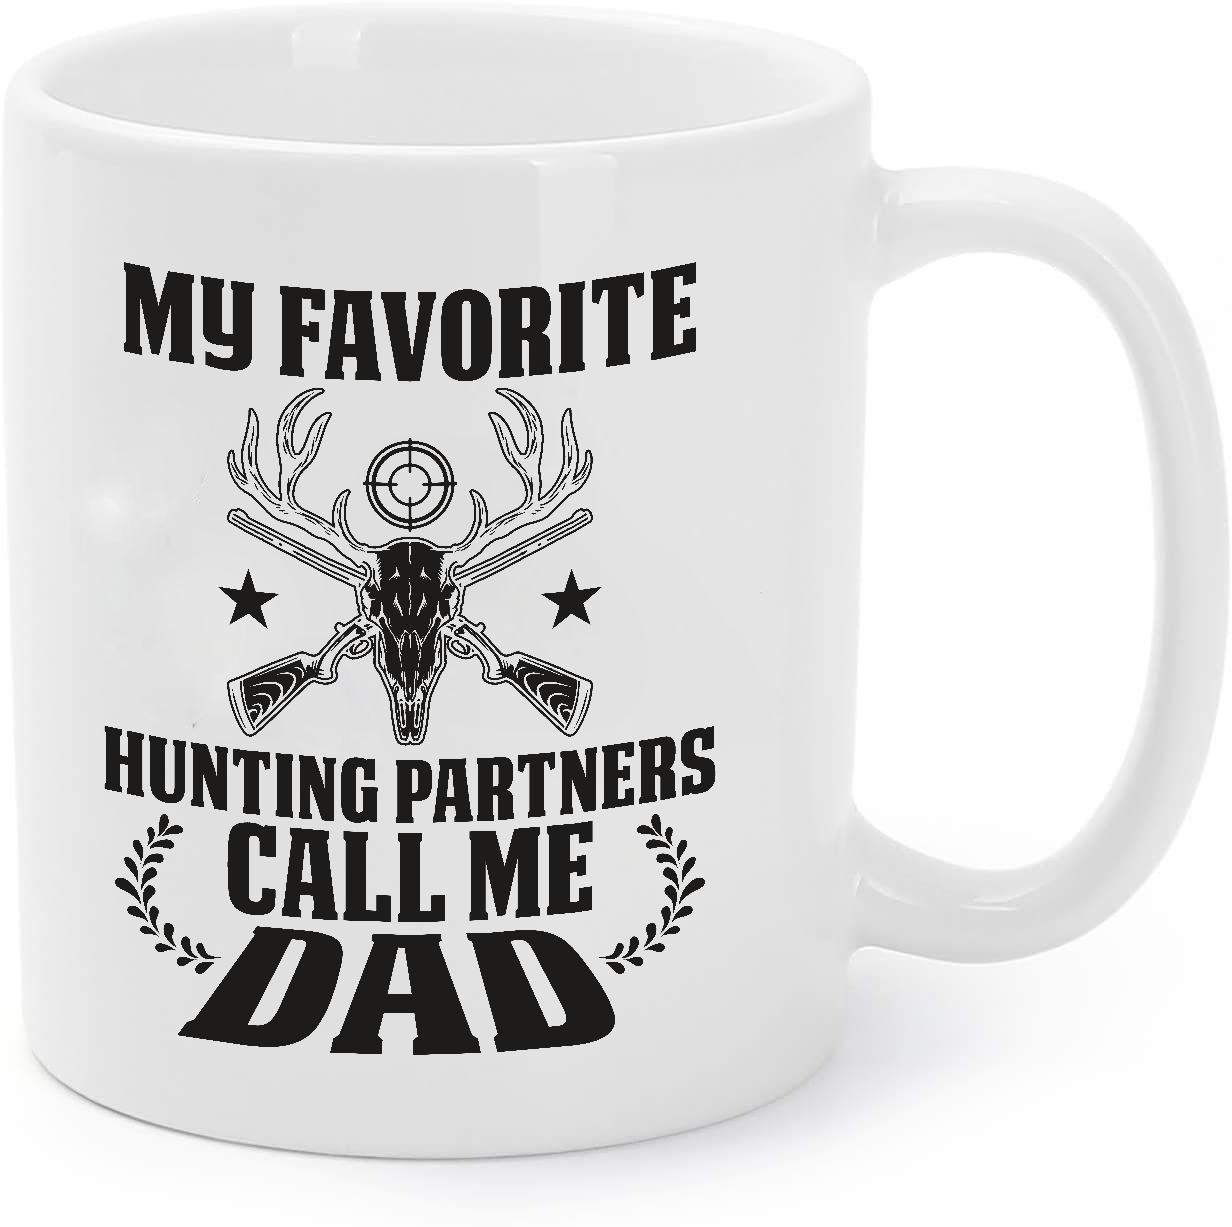 Primary image for My Favorite Hunting Partners Call Me Dad - Hunting Coffee Mug